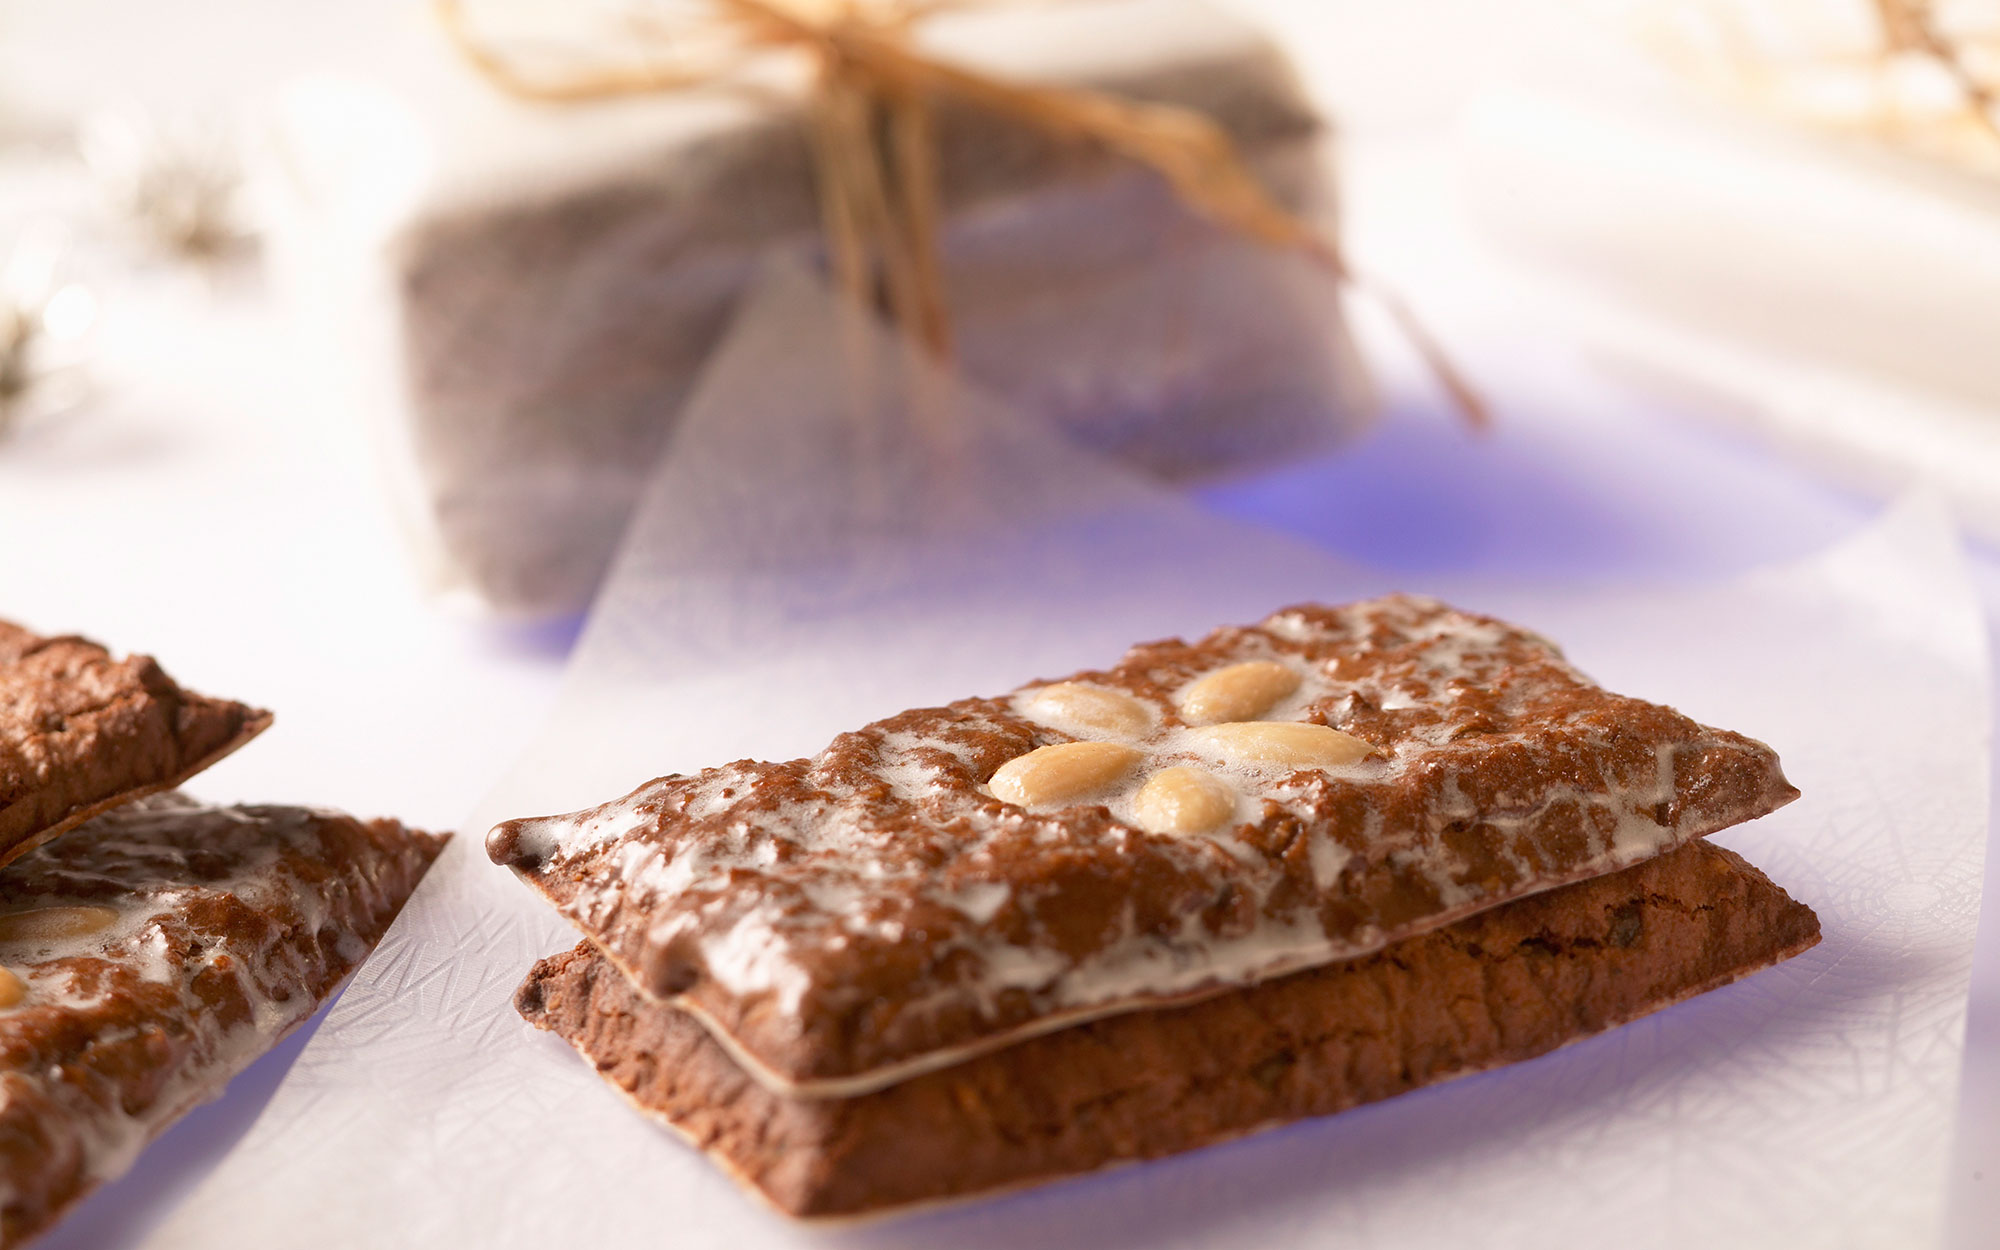 Gingerbread with almonds to give as a gift